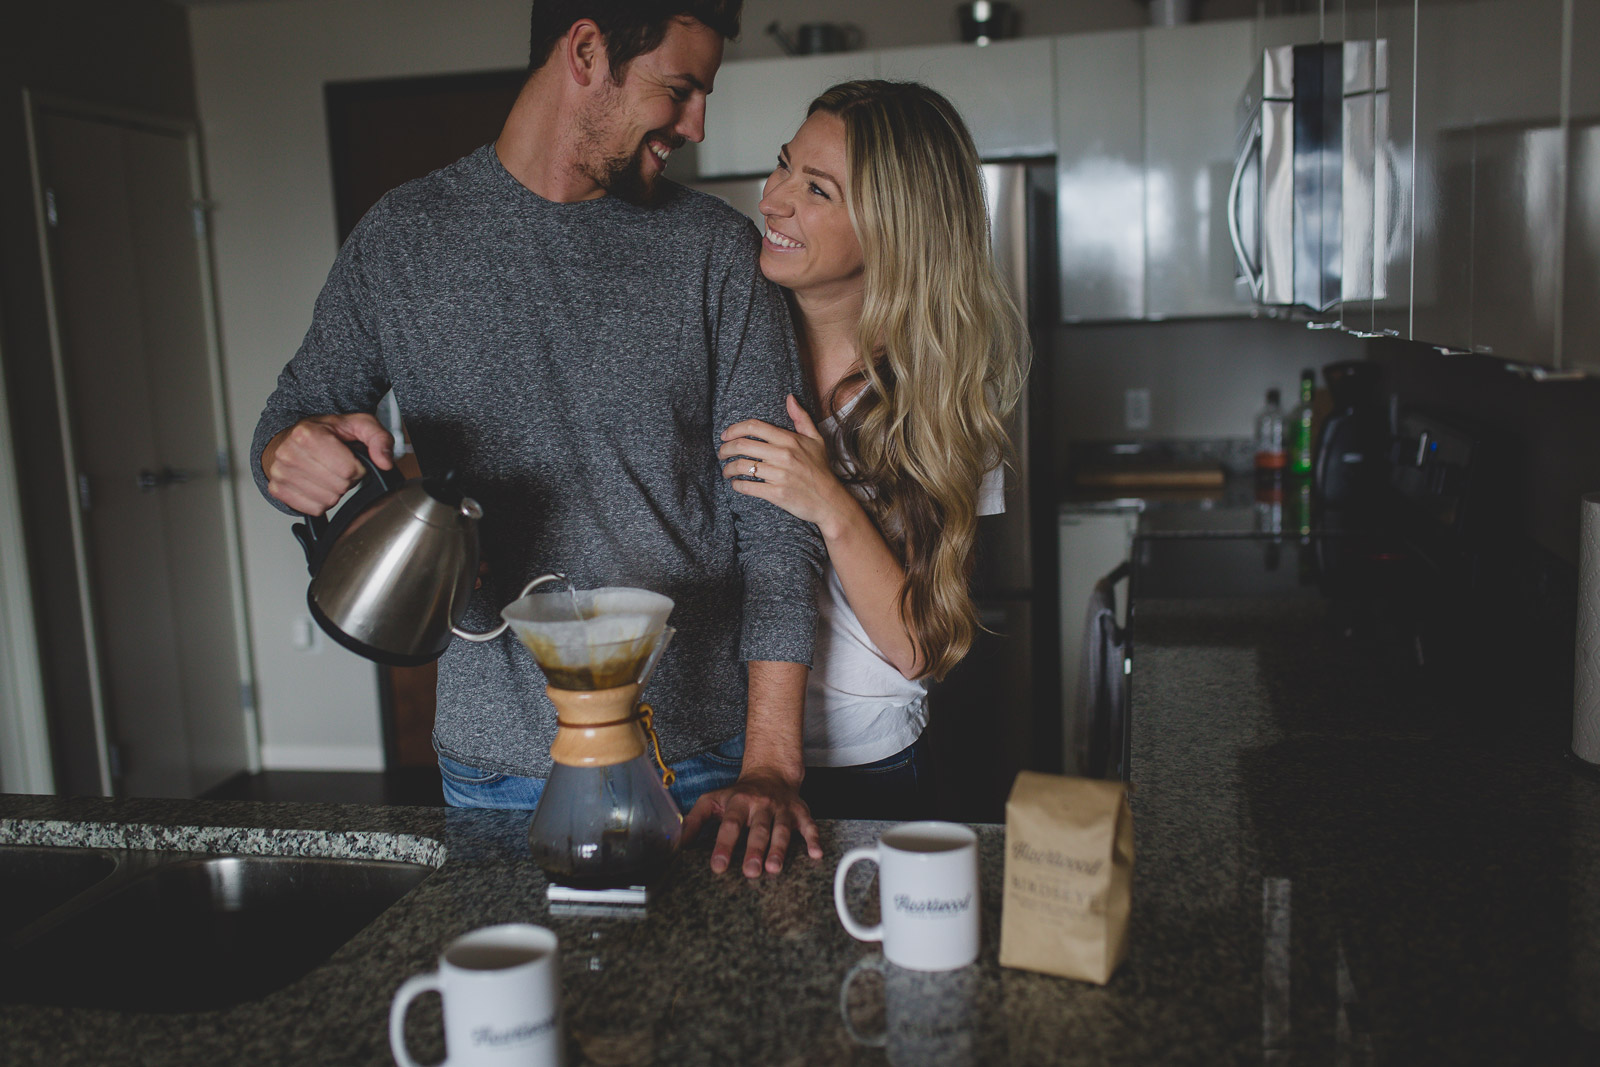 pic of husband and wife making coffee in the kitchen by Tami Keehn